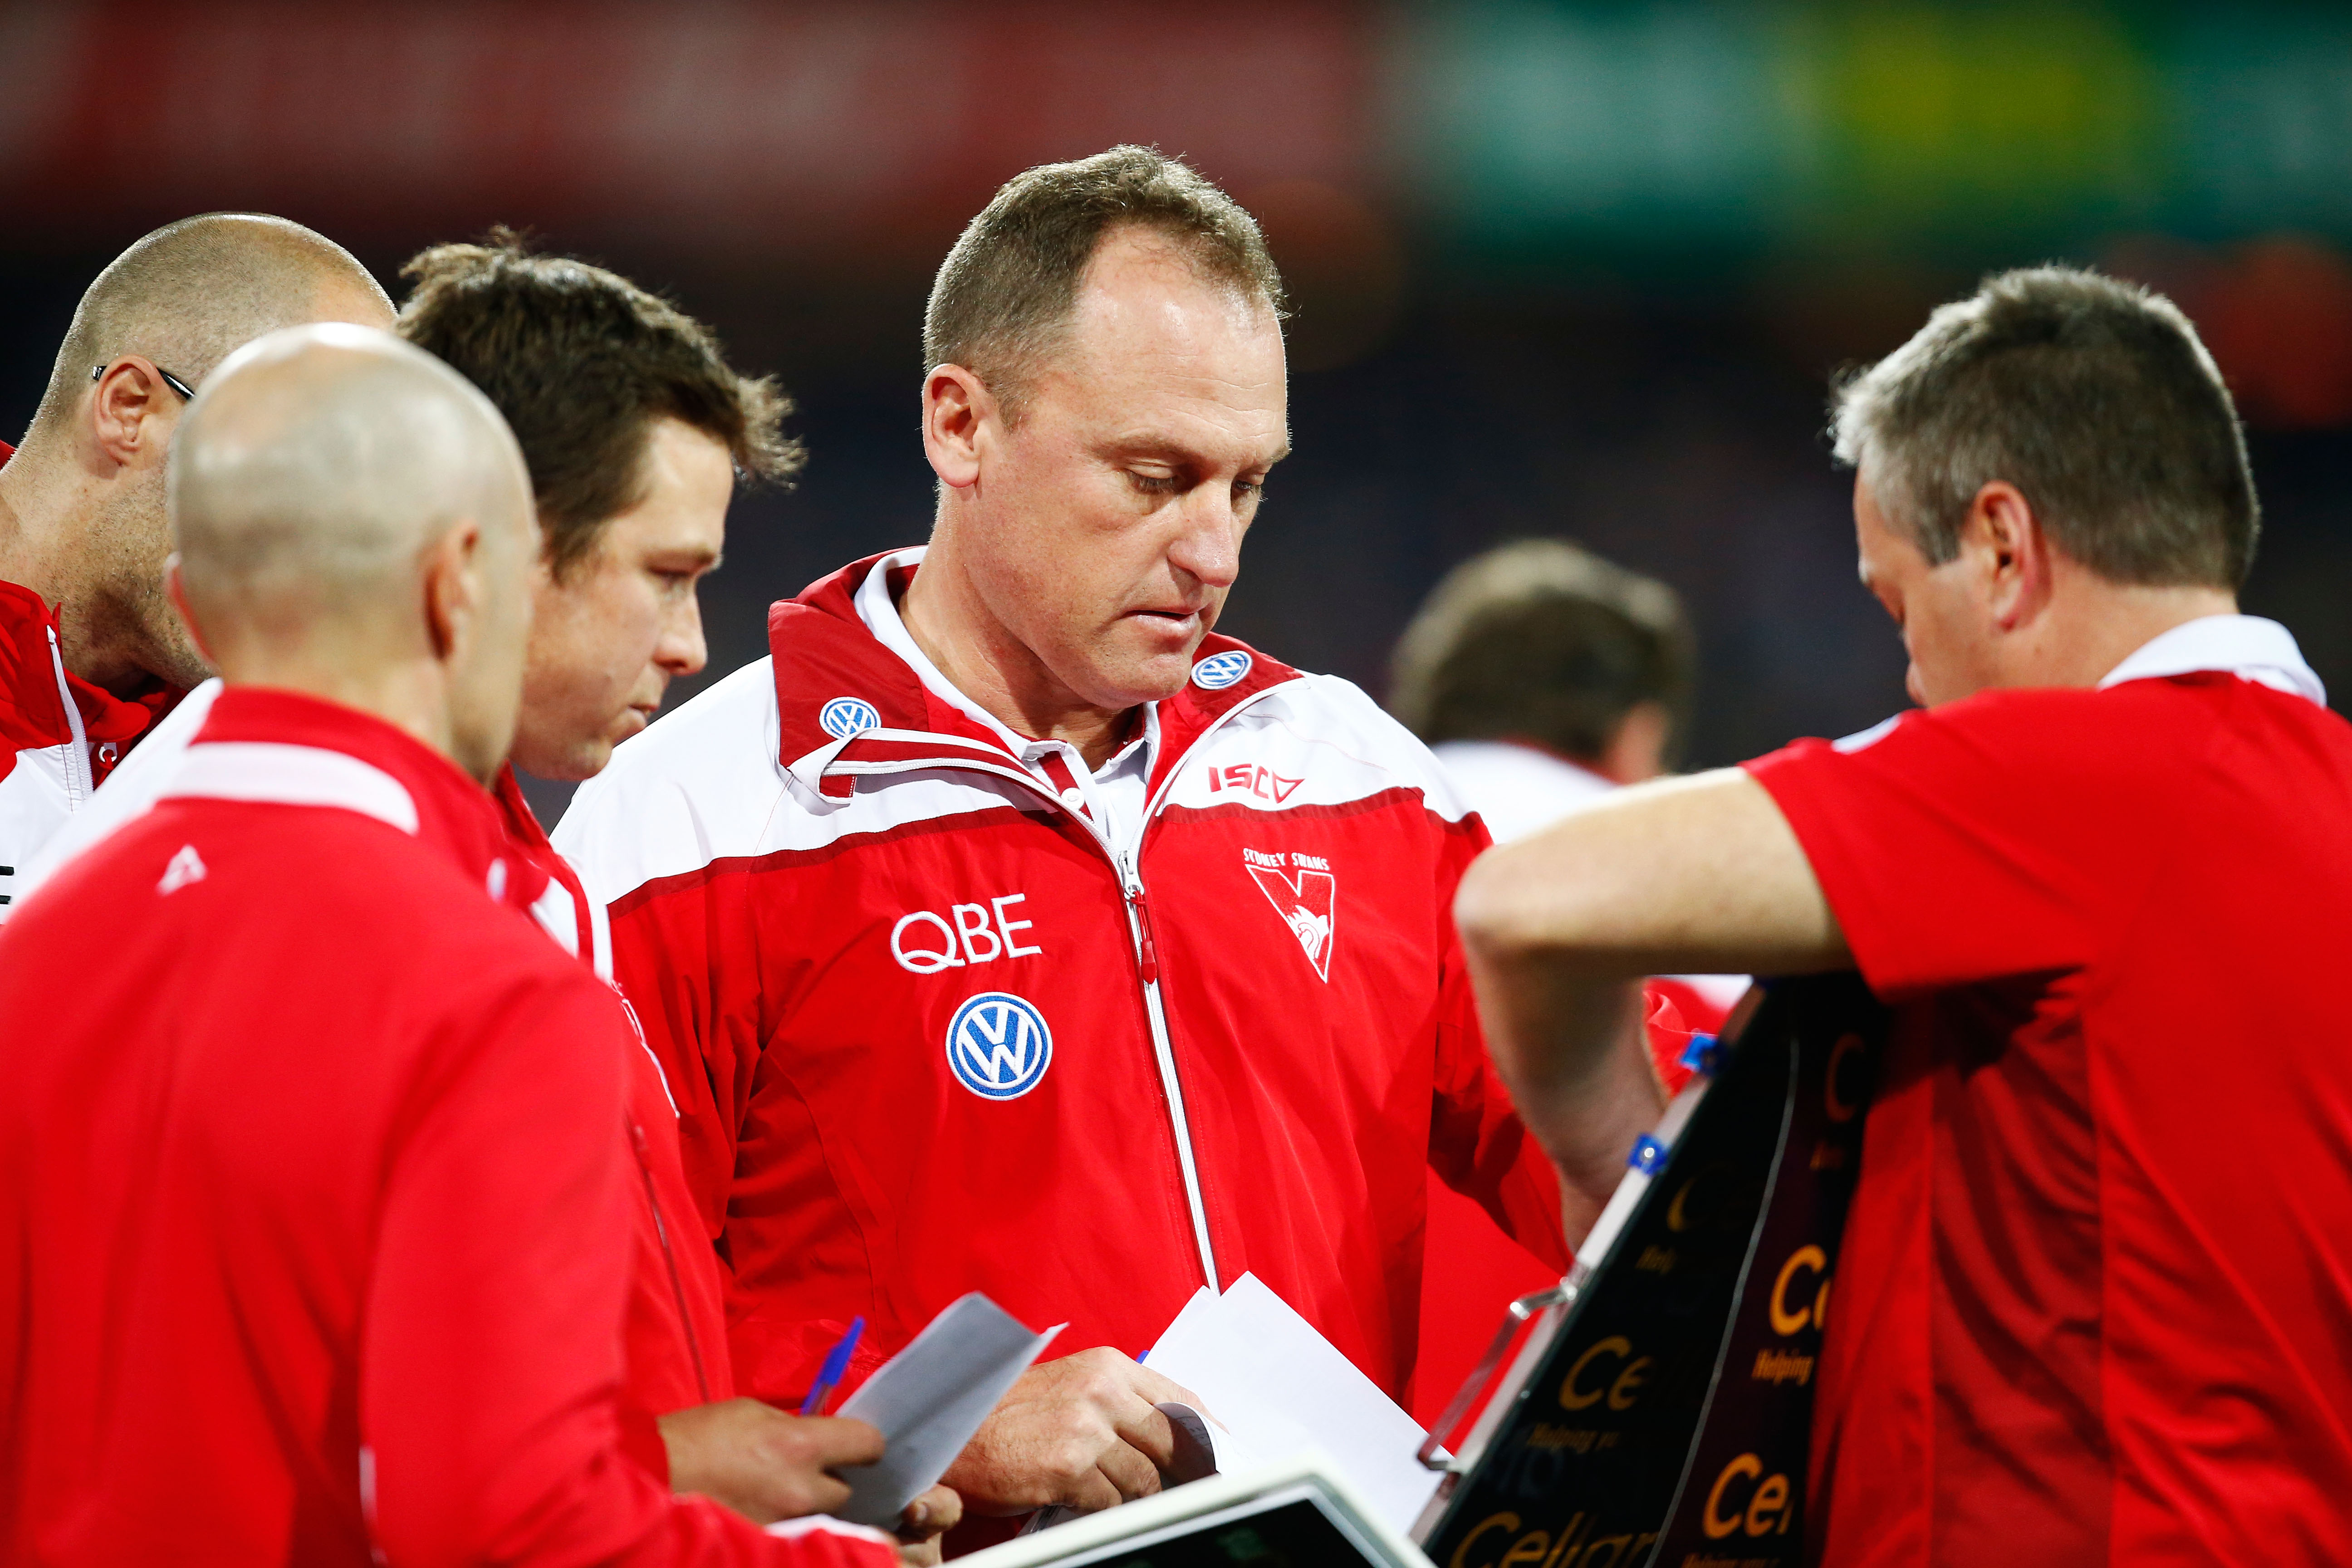 Swans head coach John Longmire talks tactics with other coaches during the 2015 AFL round thirteen match . (Photo by Matt King/AFL Media)